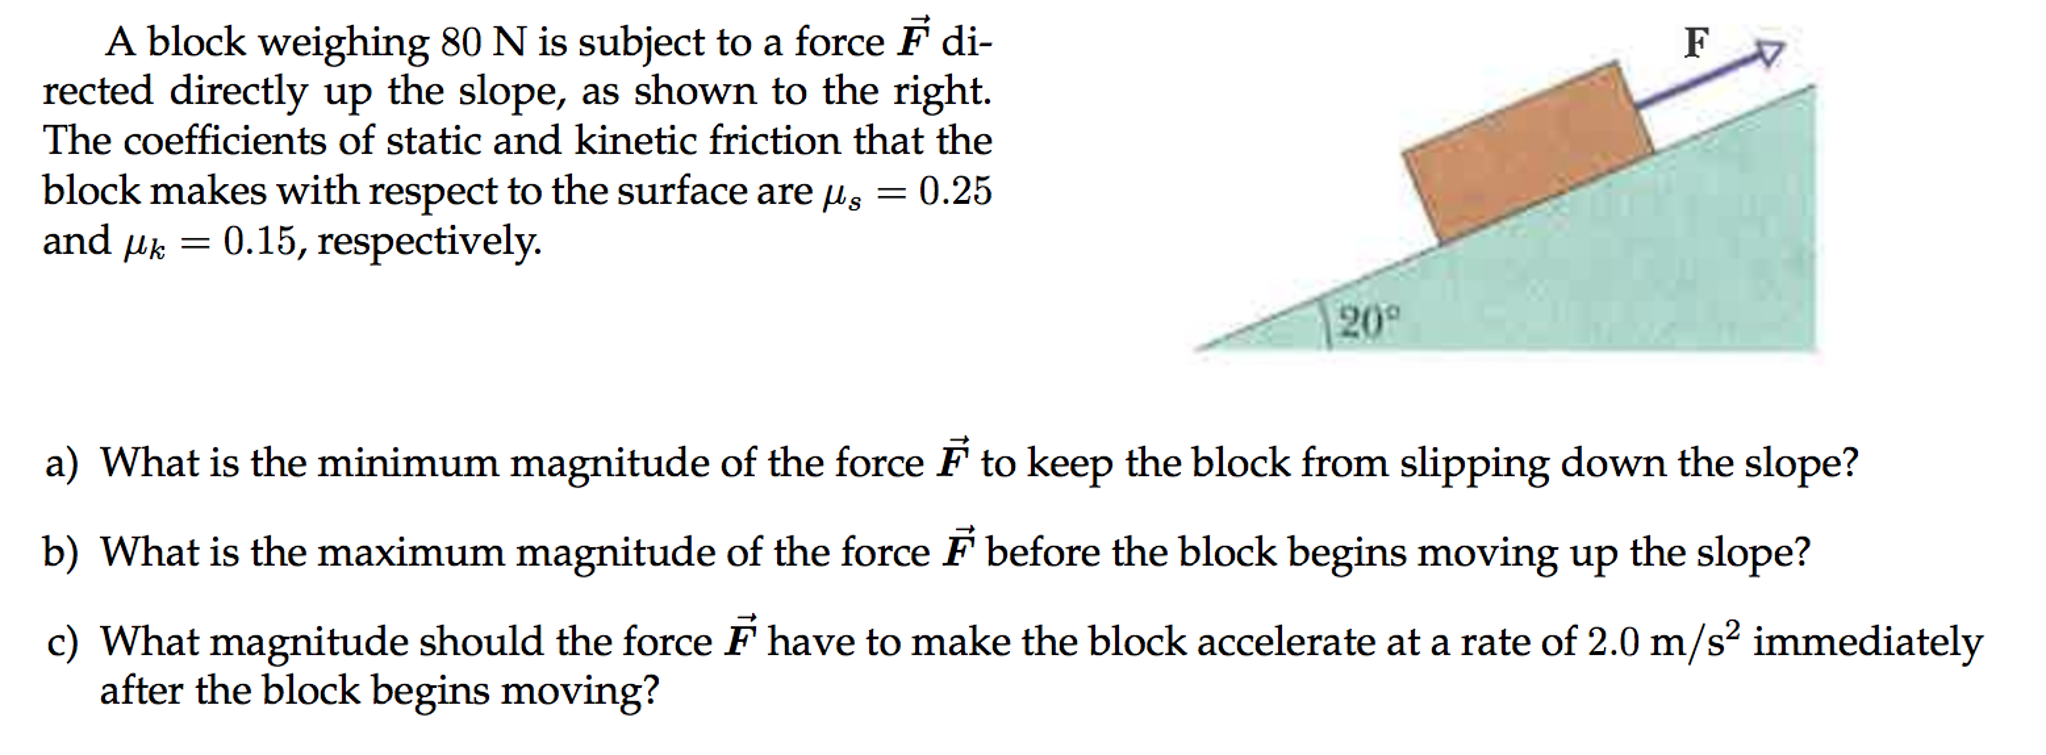 solved can someone help me with this easy force and fricta block weighing 80 n is subject to a force f di rected directly up